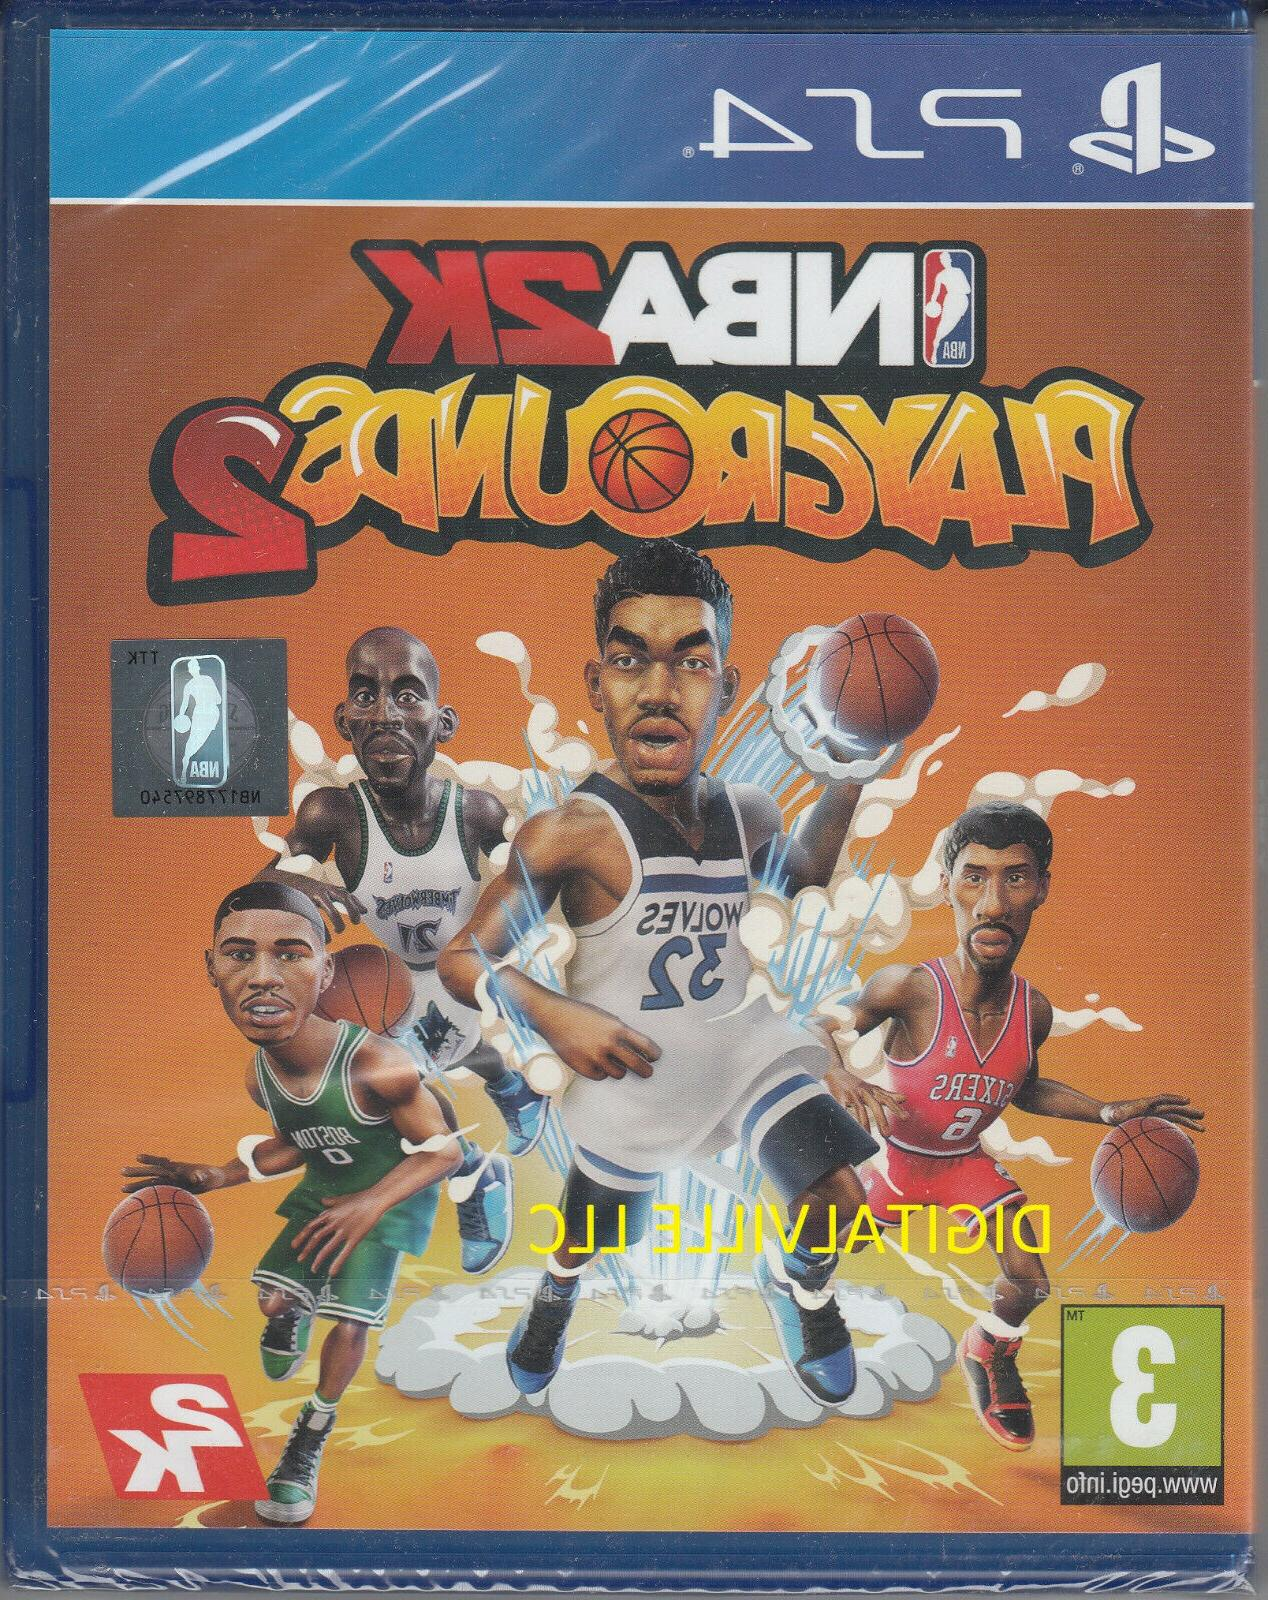 nba playgrounds 2 ps4 sony playstation 4